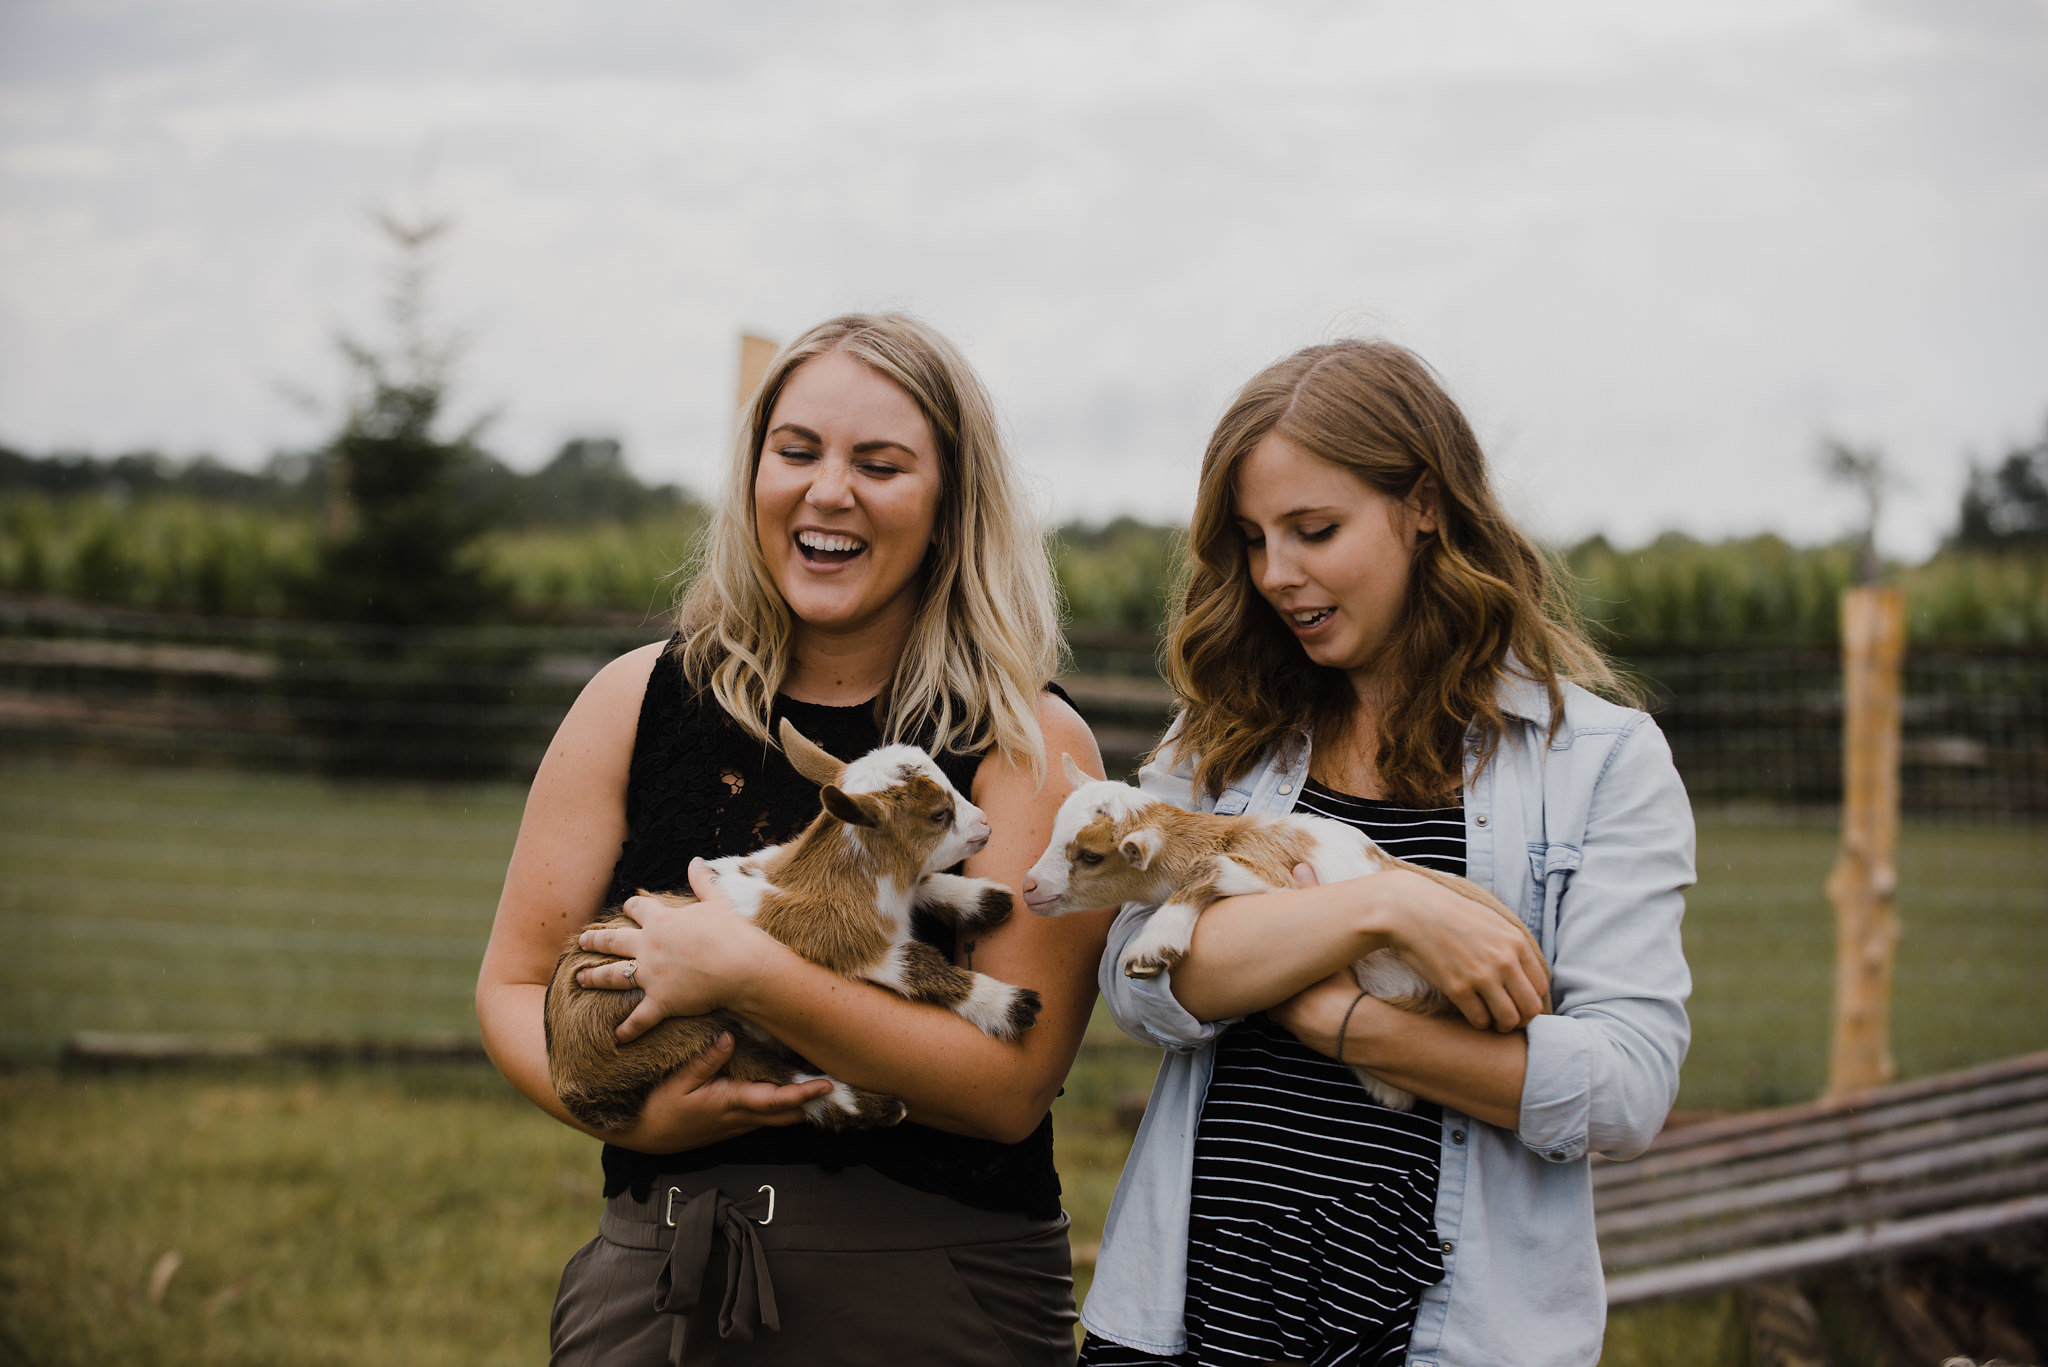 The Social Project, Barrie Social Project, Barrie Social, Branding, Social Media, Creative, Creative Collaboration, Girl Boss, Barrie Boss Babes, Entrepreneurs, Graphic Design, Mood Board, Branding Process, goats, baby goats